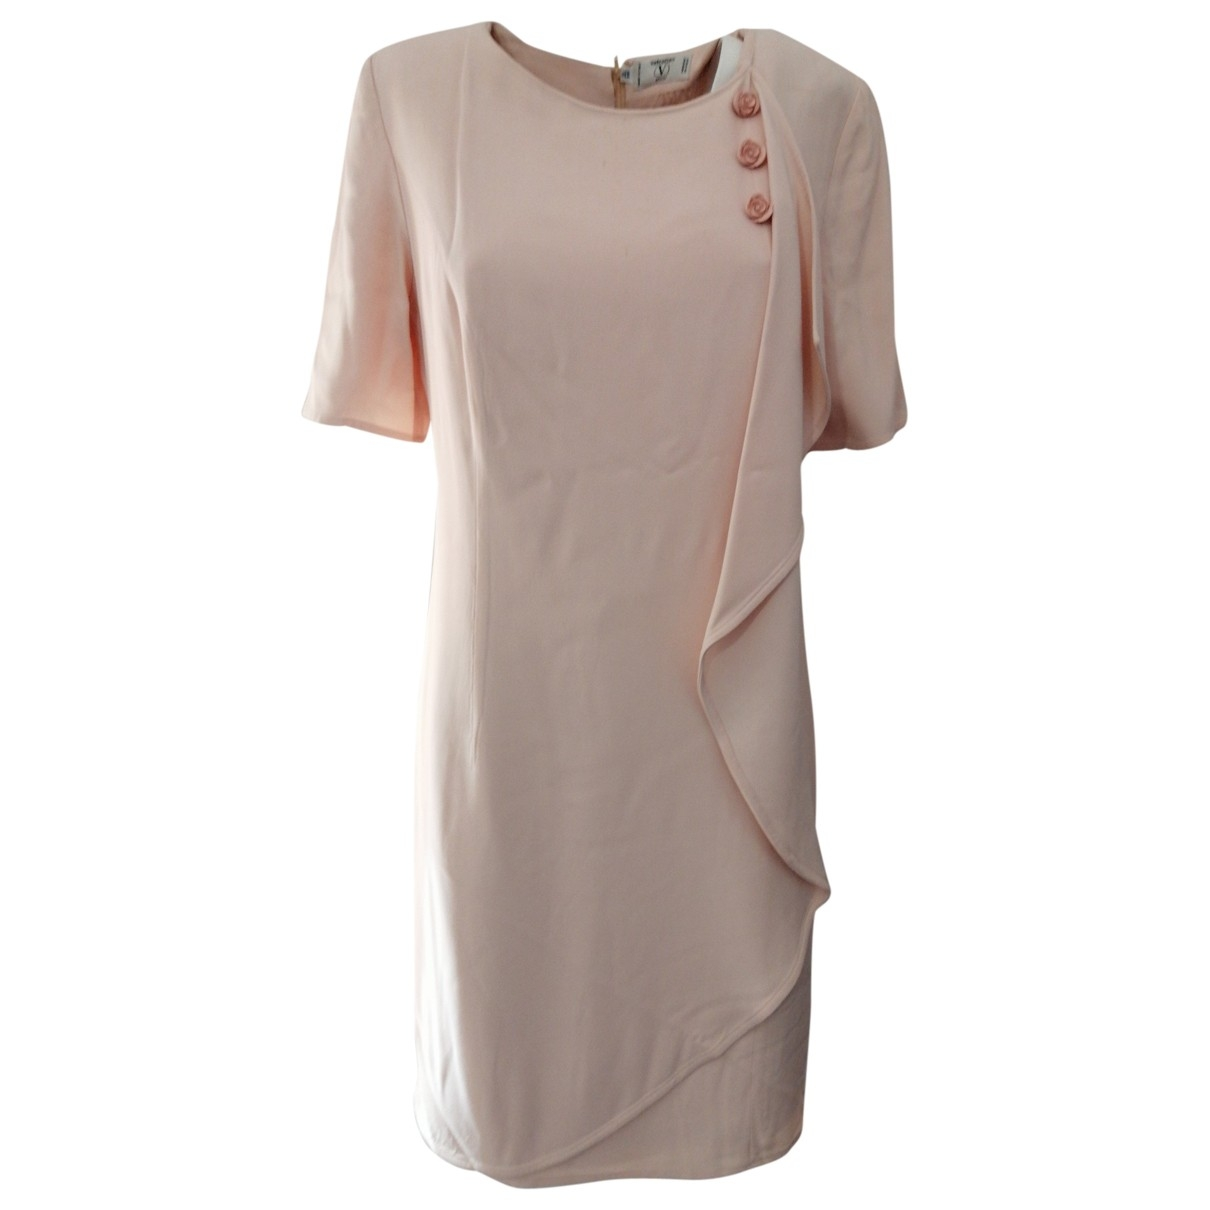 Valentino Garavani \N Pink dress for Women 44 IT